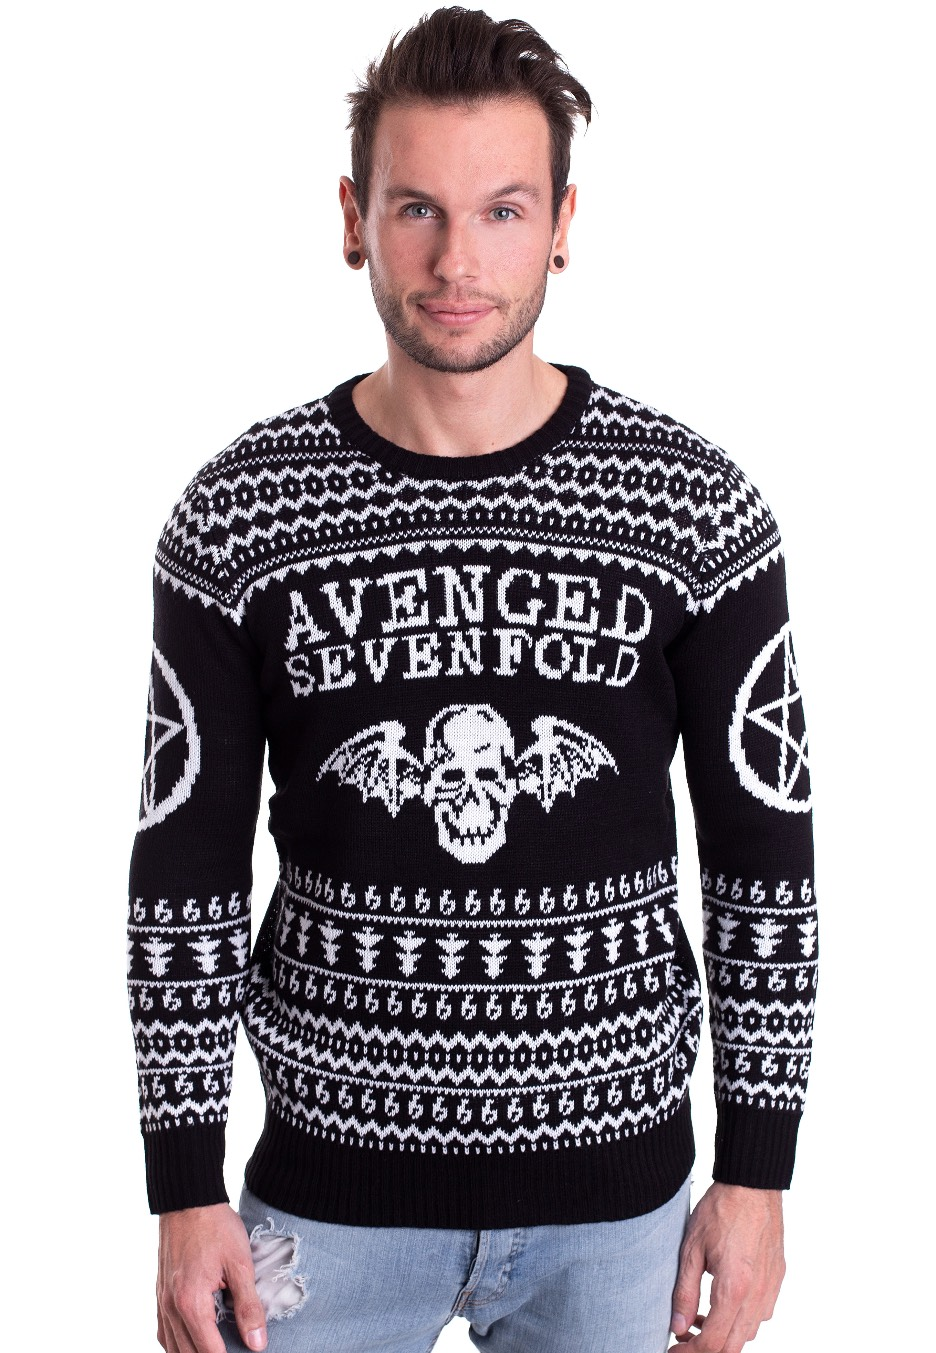 Avenged Sevenfold Ugly Christmas Sweater Official Hard Rock